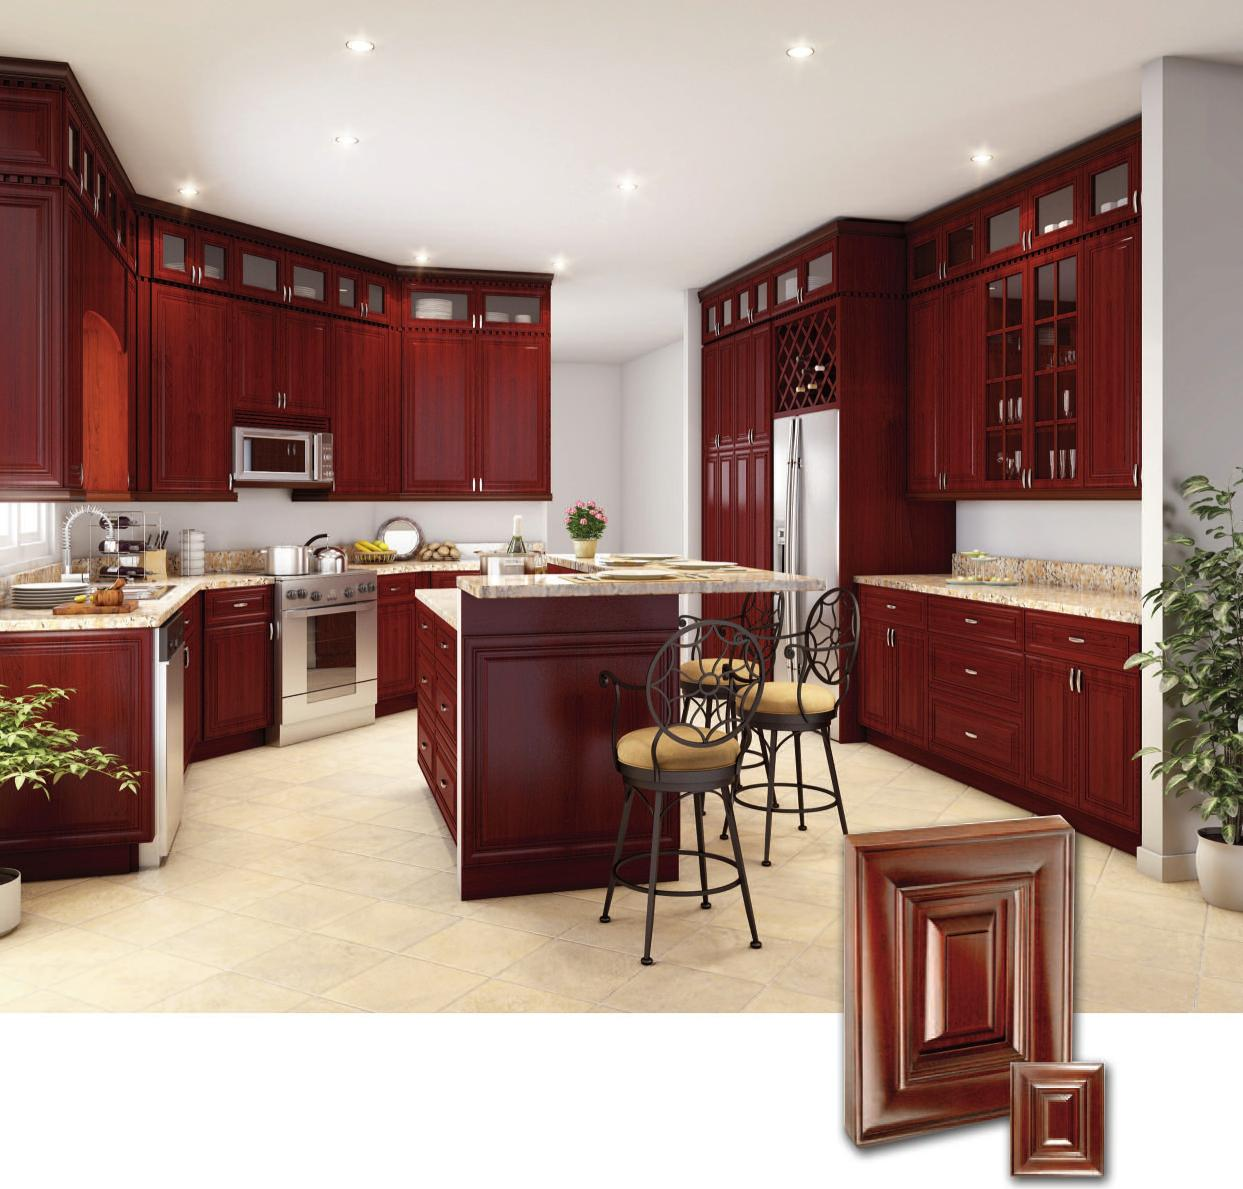 AD RTA Lexington Solid Wood Kitchen Cabinet, Alder wood, Cherry finish,dovetail drawers, full extension soft close drawer glides.